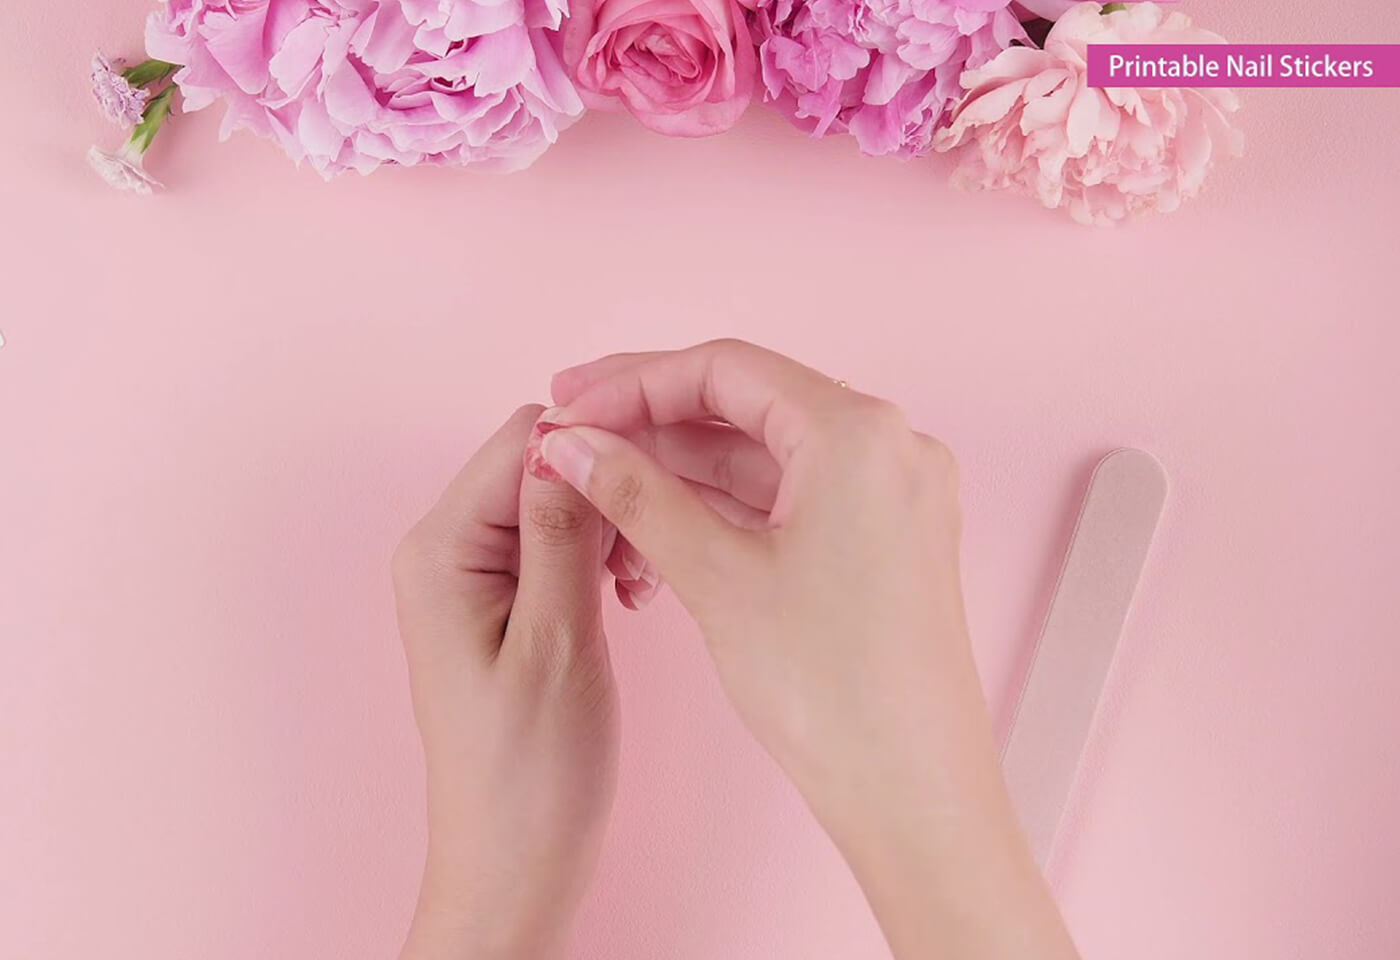 Printable nail stickers on the PIXMA HOME TS9560